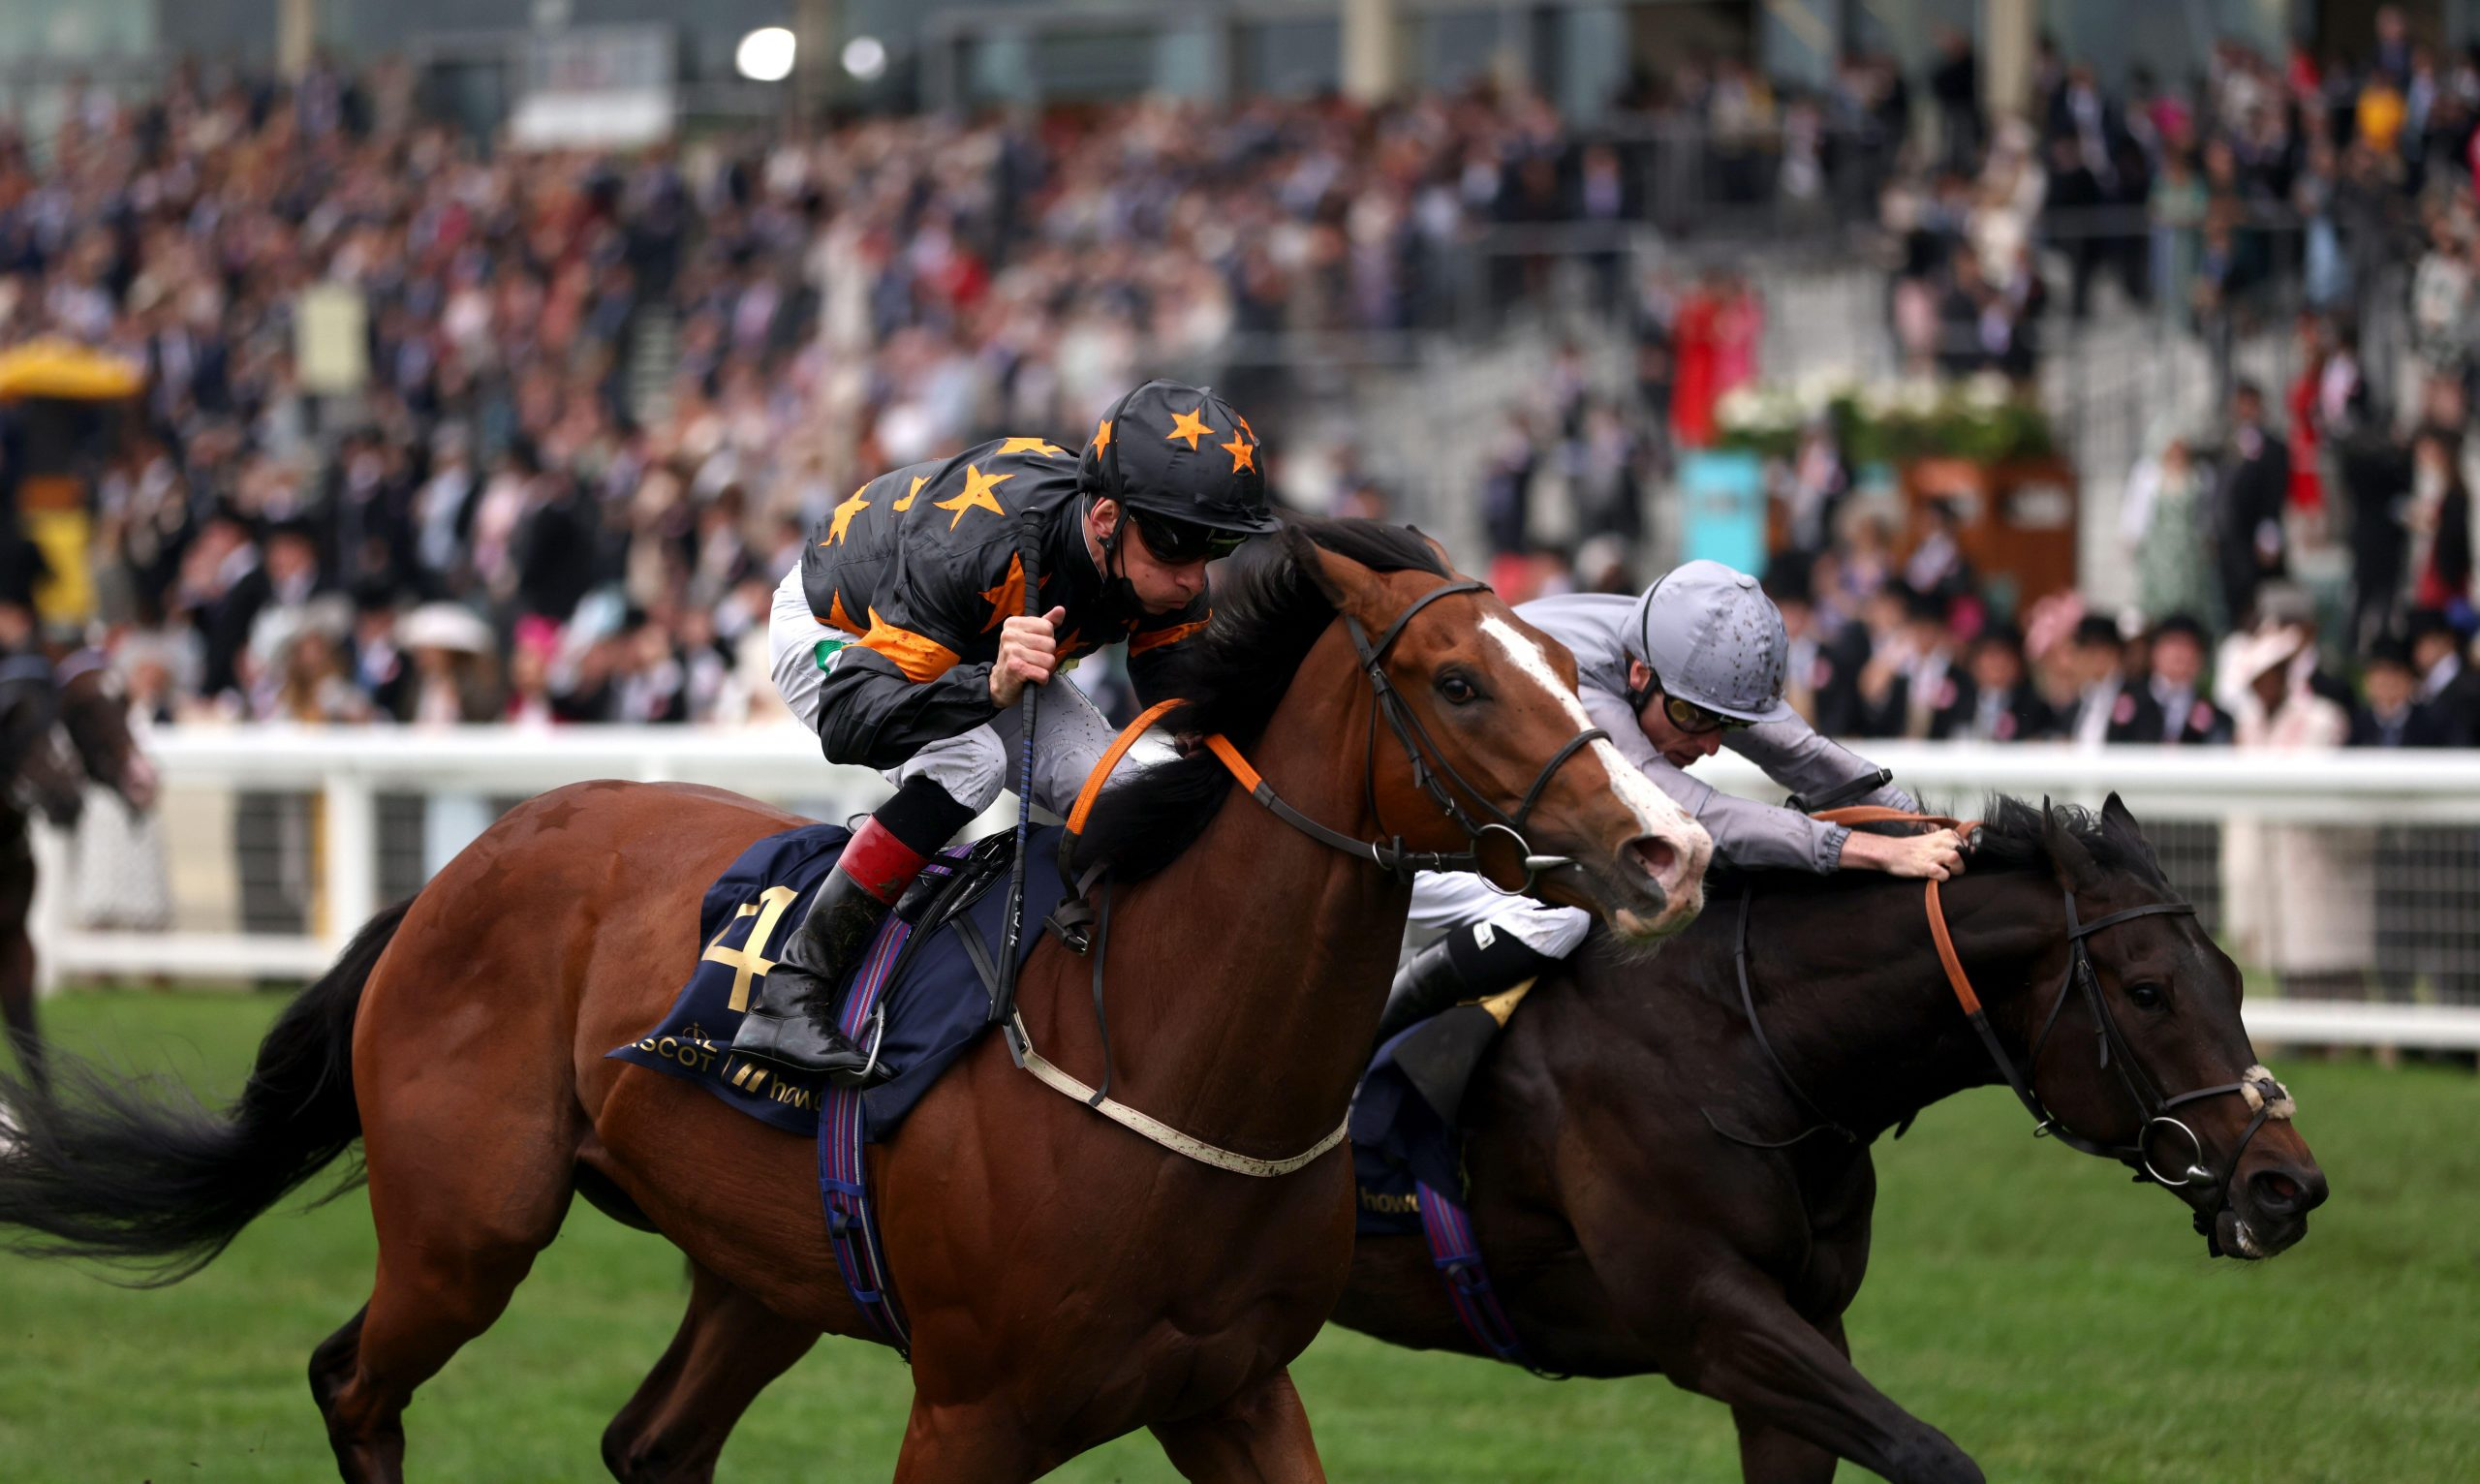 2G47J0D Rohaan (left) ridden by Shane Kelly on their way to winning the Wokingham Stakes, during day five of Royal Ascot at Ascot Racecourse. Picture date: Saturday June 19, 2021.